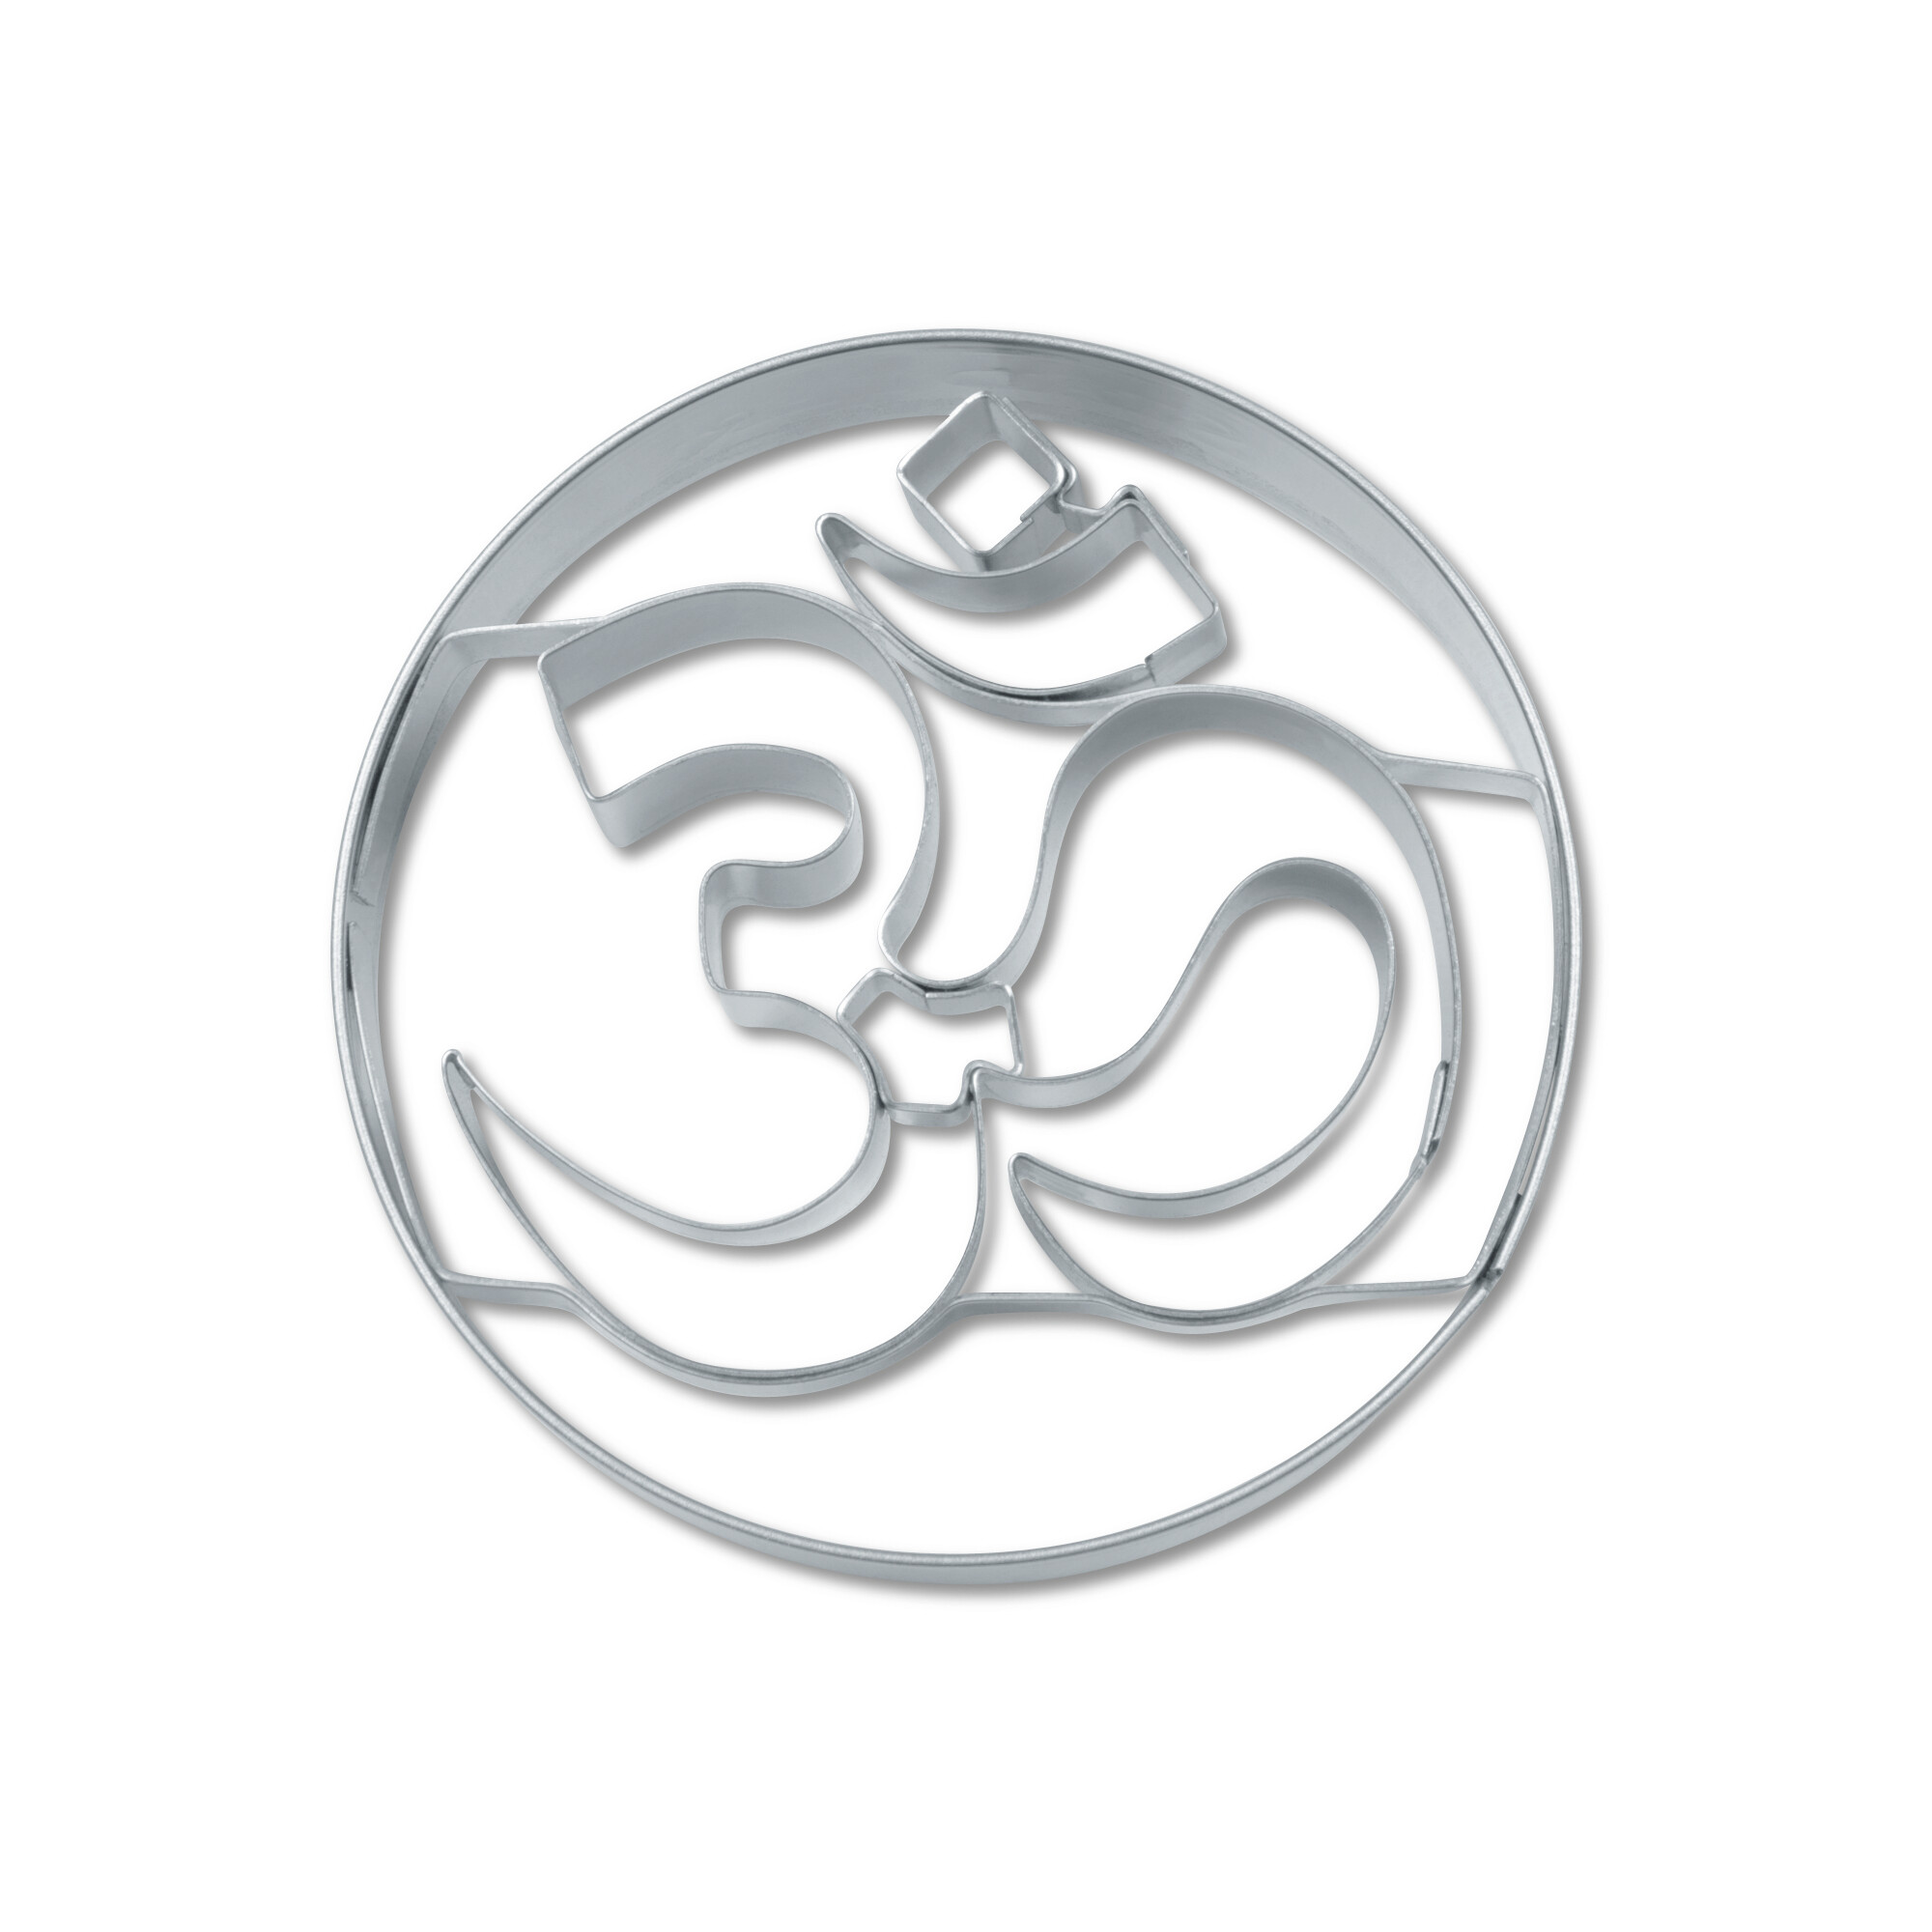 Cookie cutter with stamp - Om